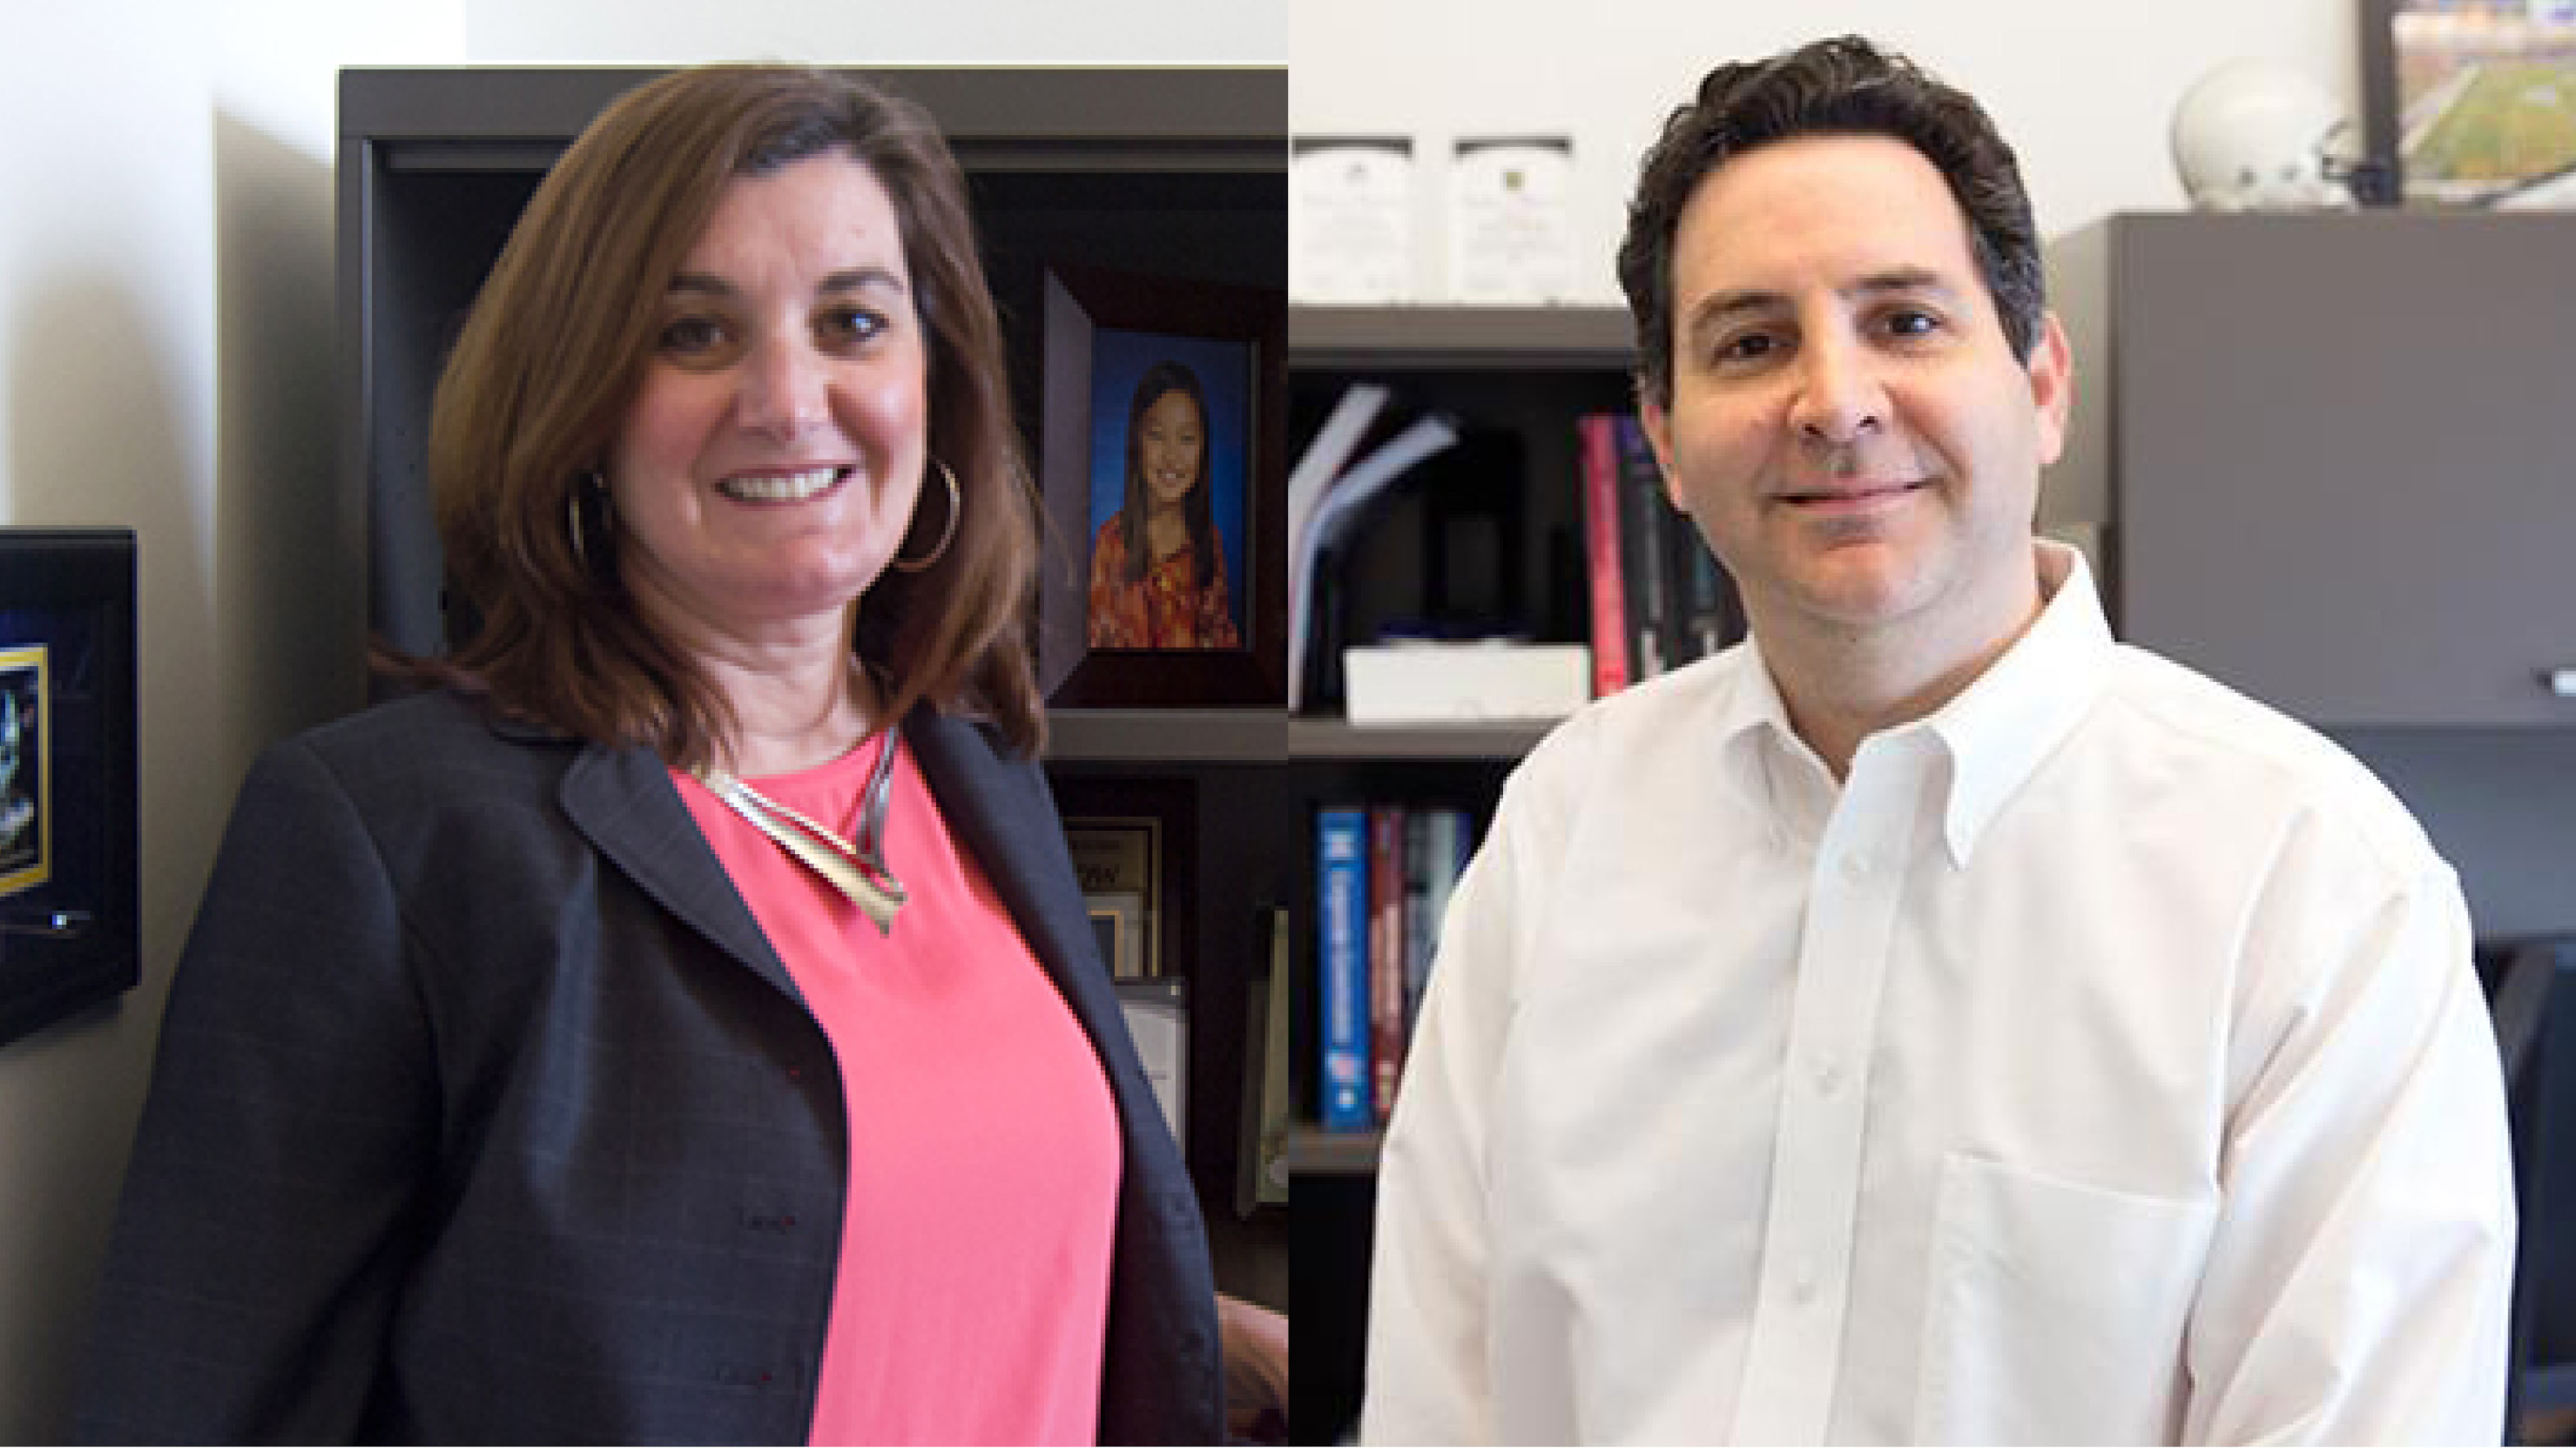 LeBow faculty members Dana D'Angelo and David Becher, PhD